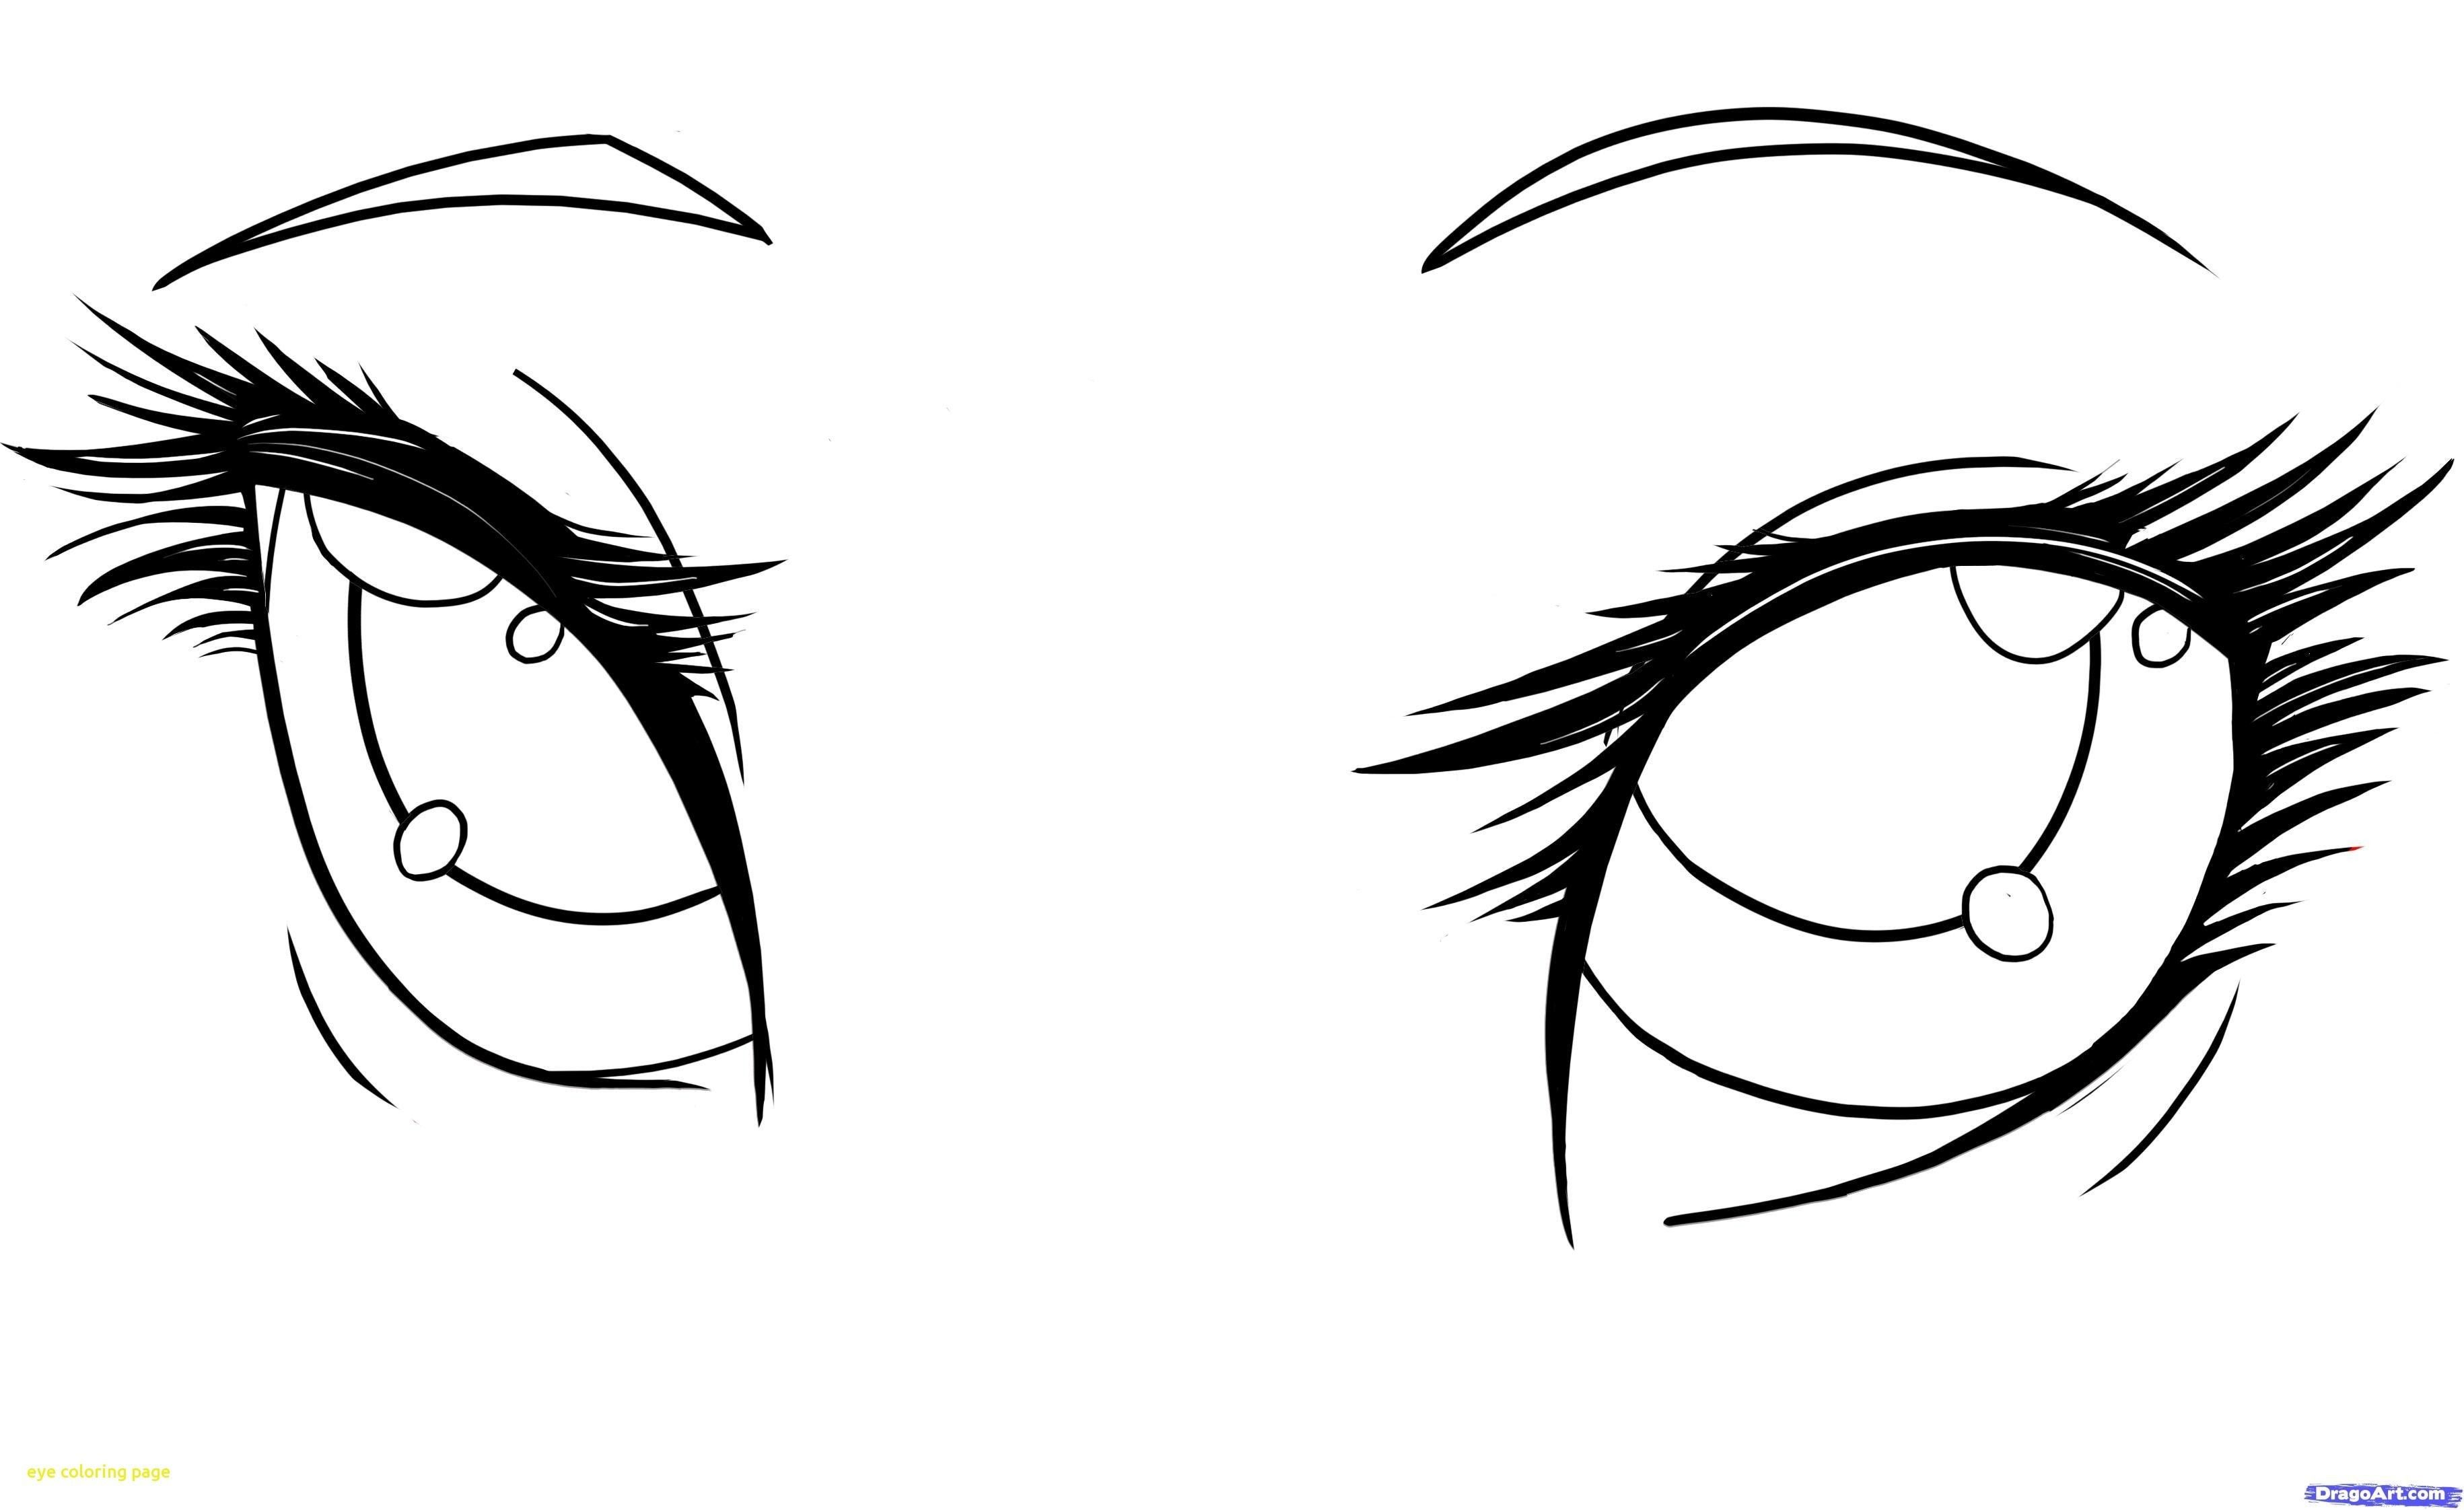 Direct Eye Coloring Page Pages Eyes New With 6 Realistic How To Draw Anime Eyes Girl Eyes Drawing Anime Eyes